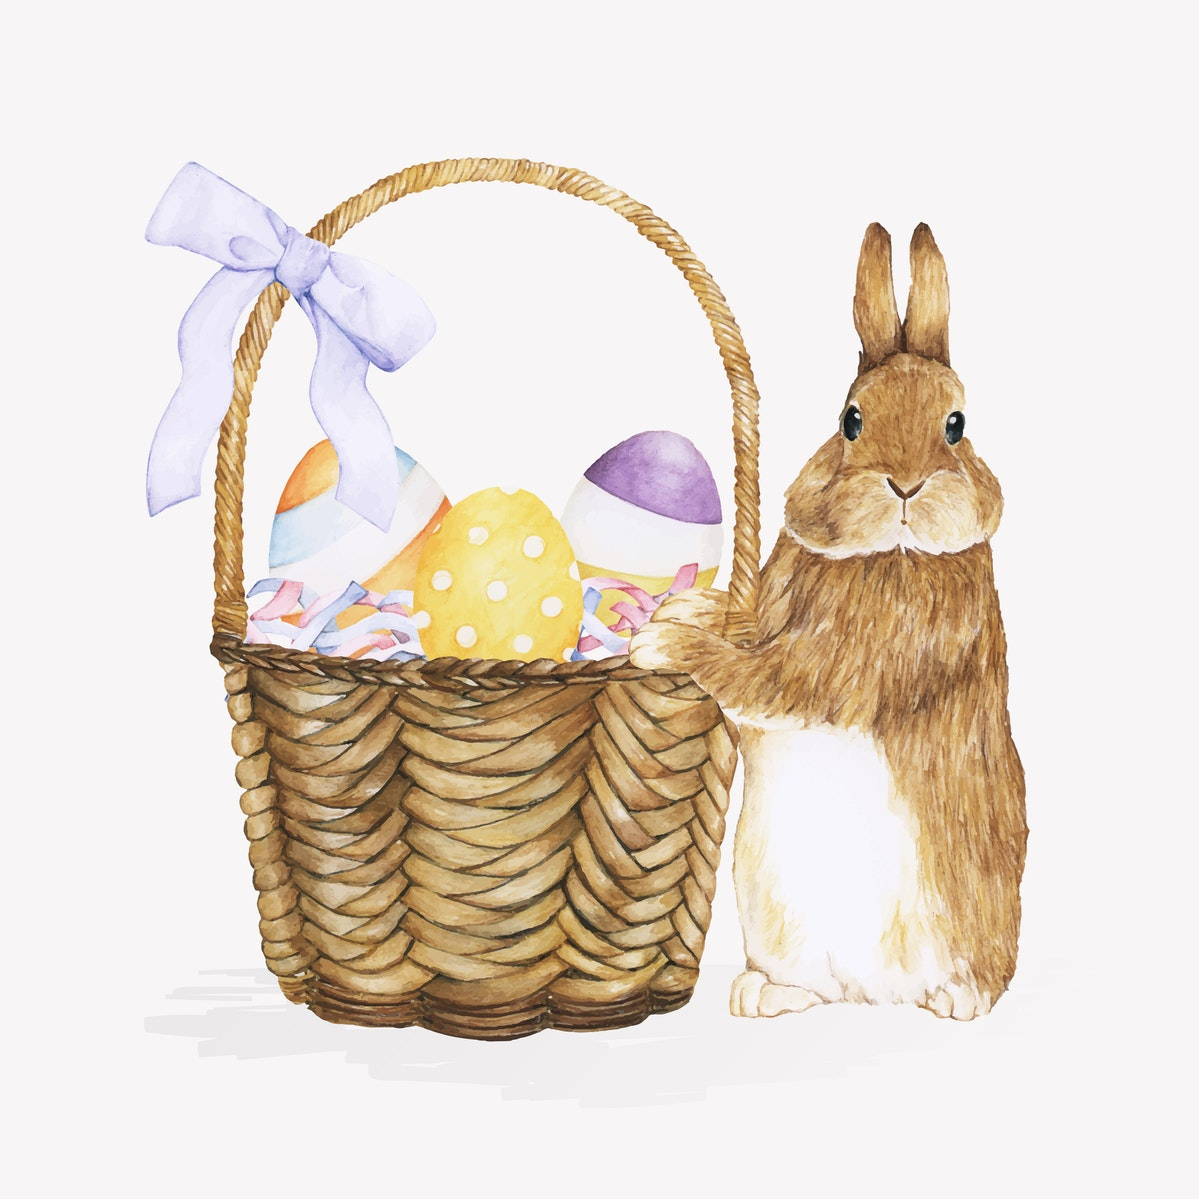 Watercolor image of a rabbit standing next to an easter basked with easter eggs in it.